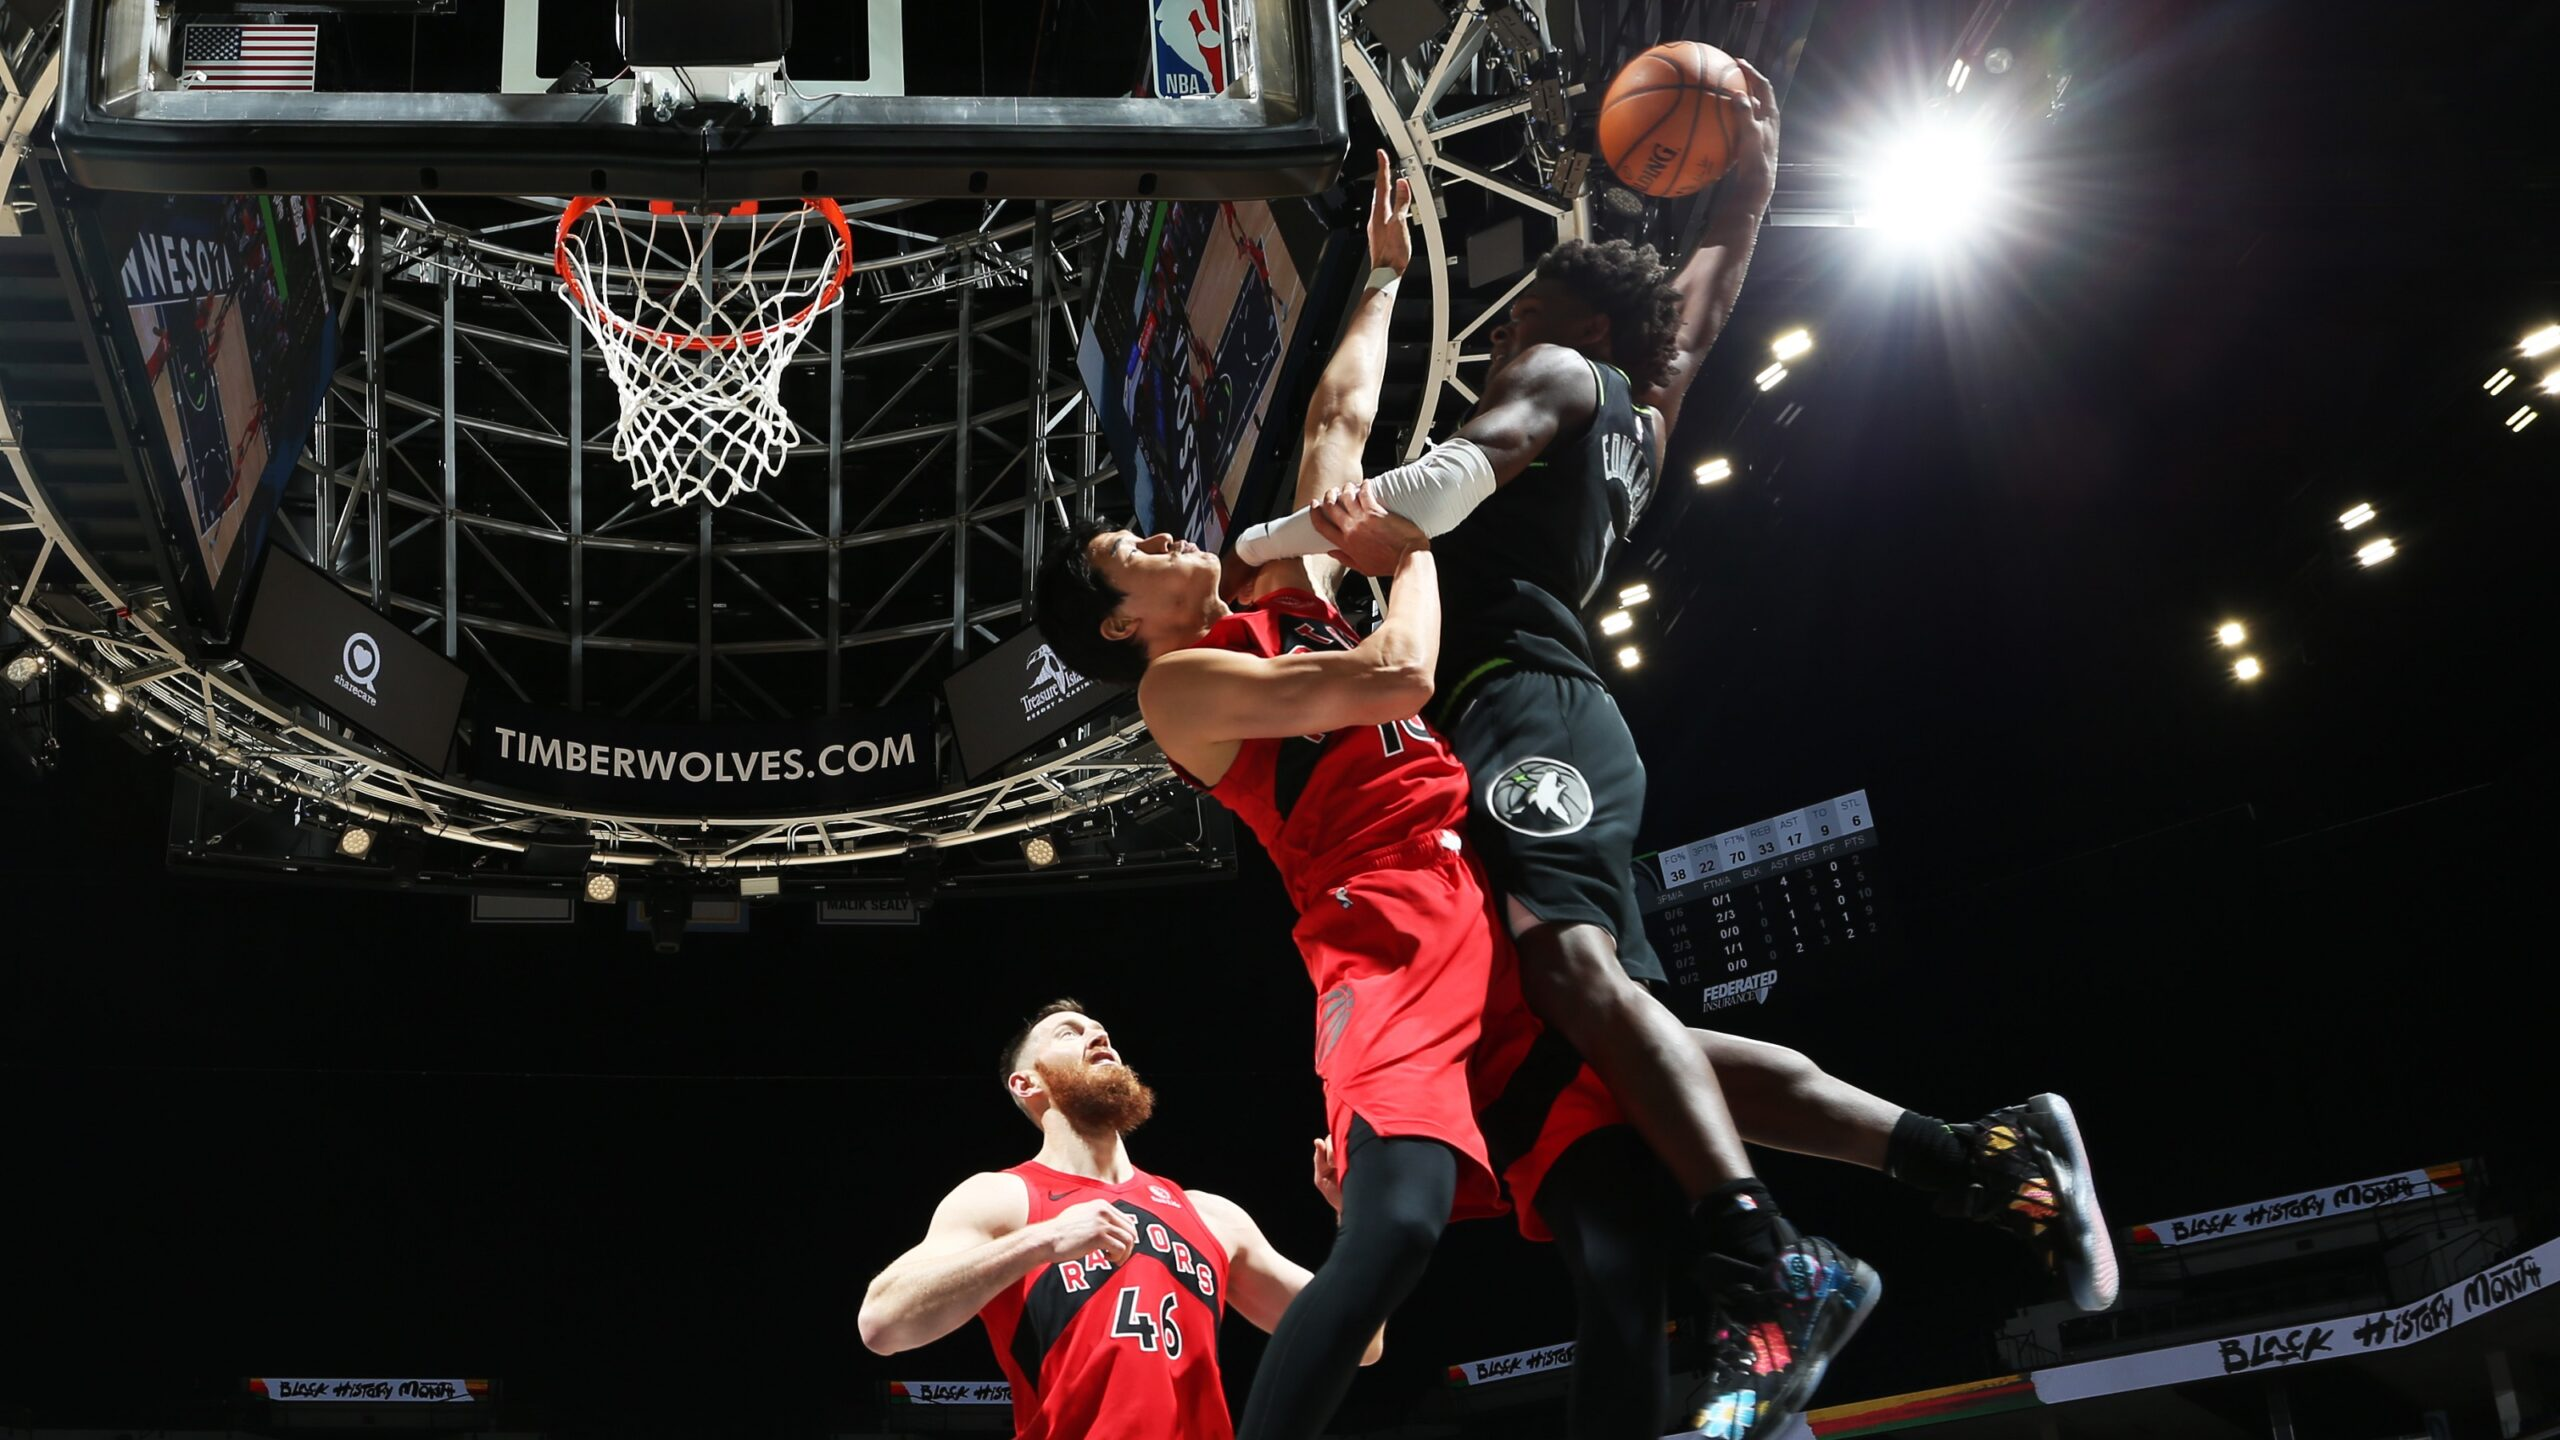 The Top Dunks of the 2020-2021 Season